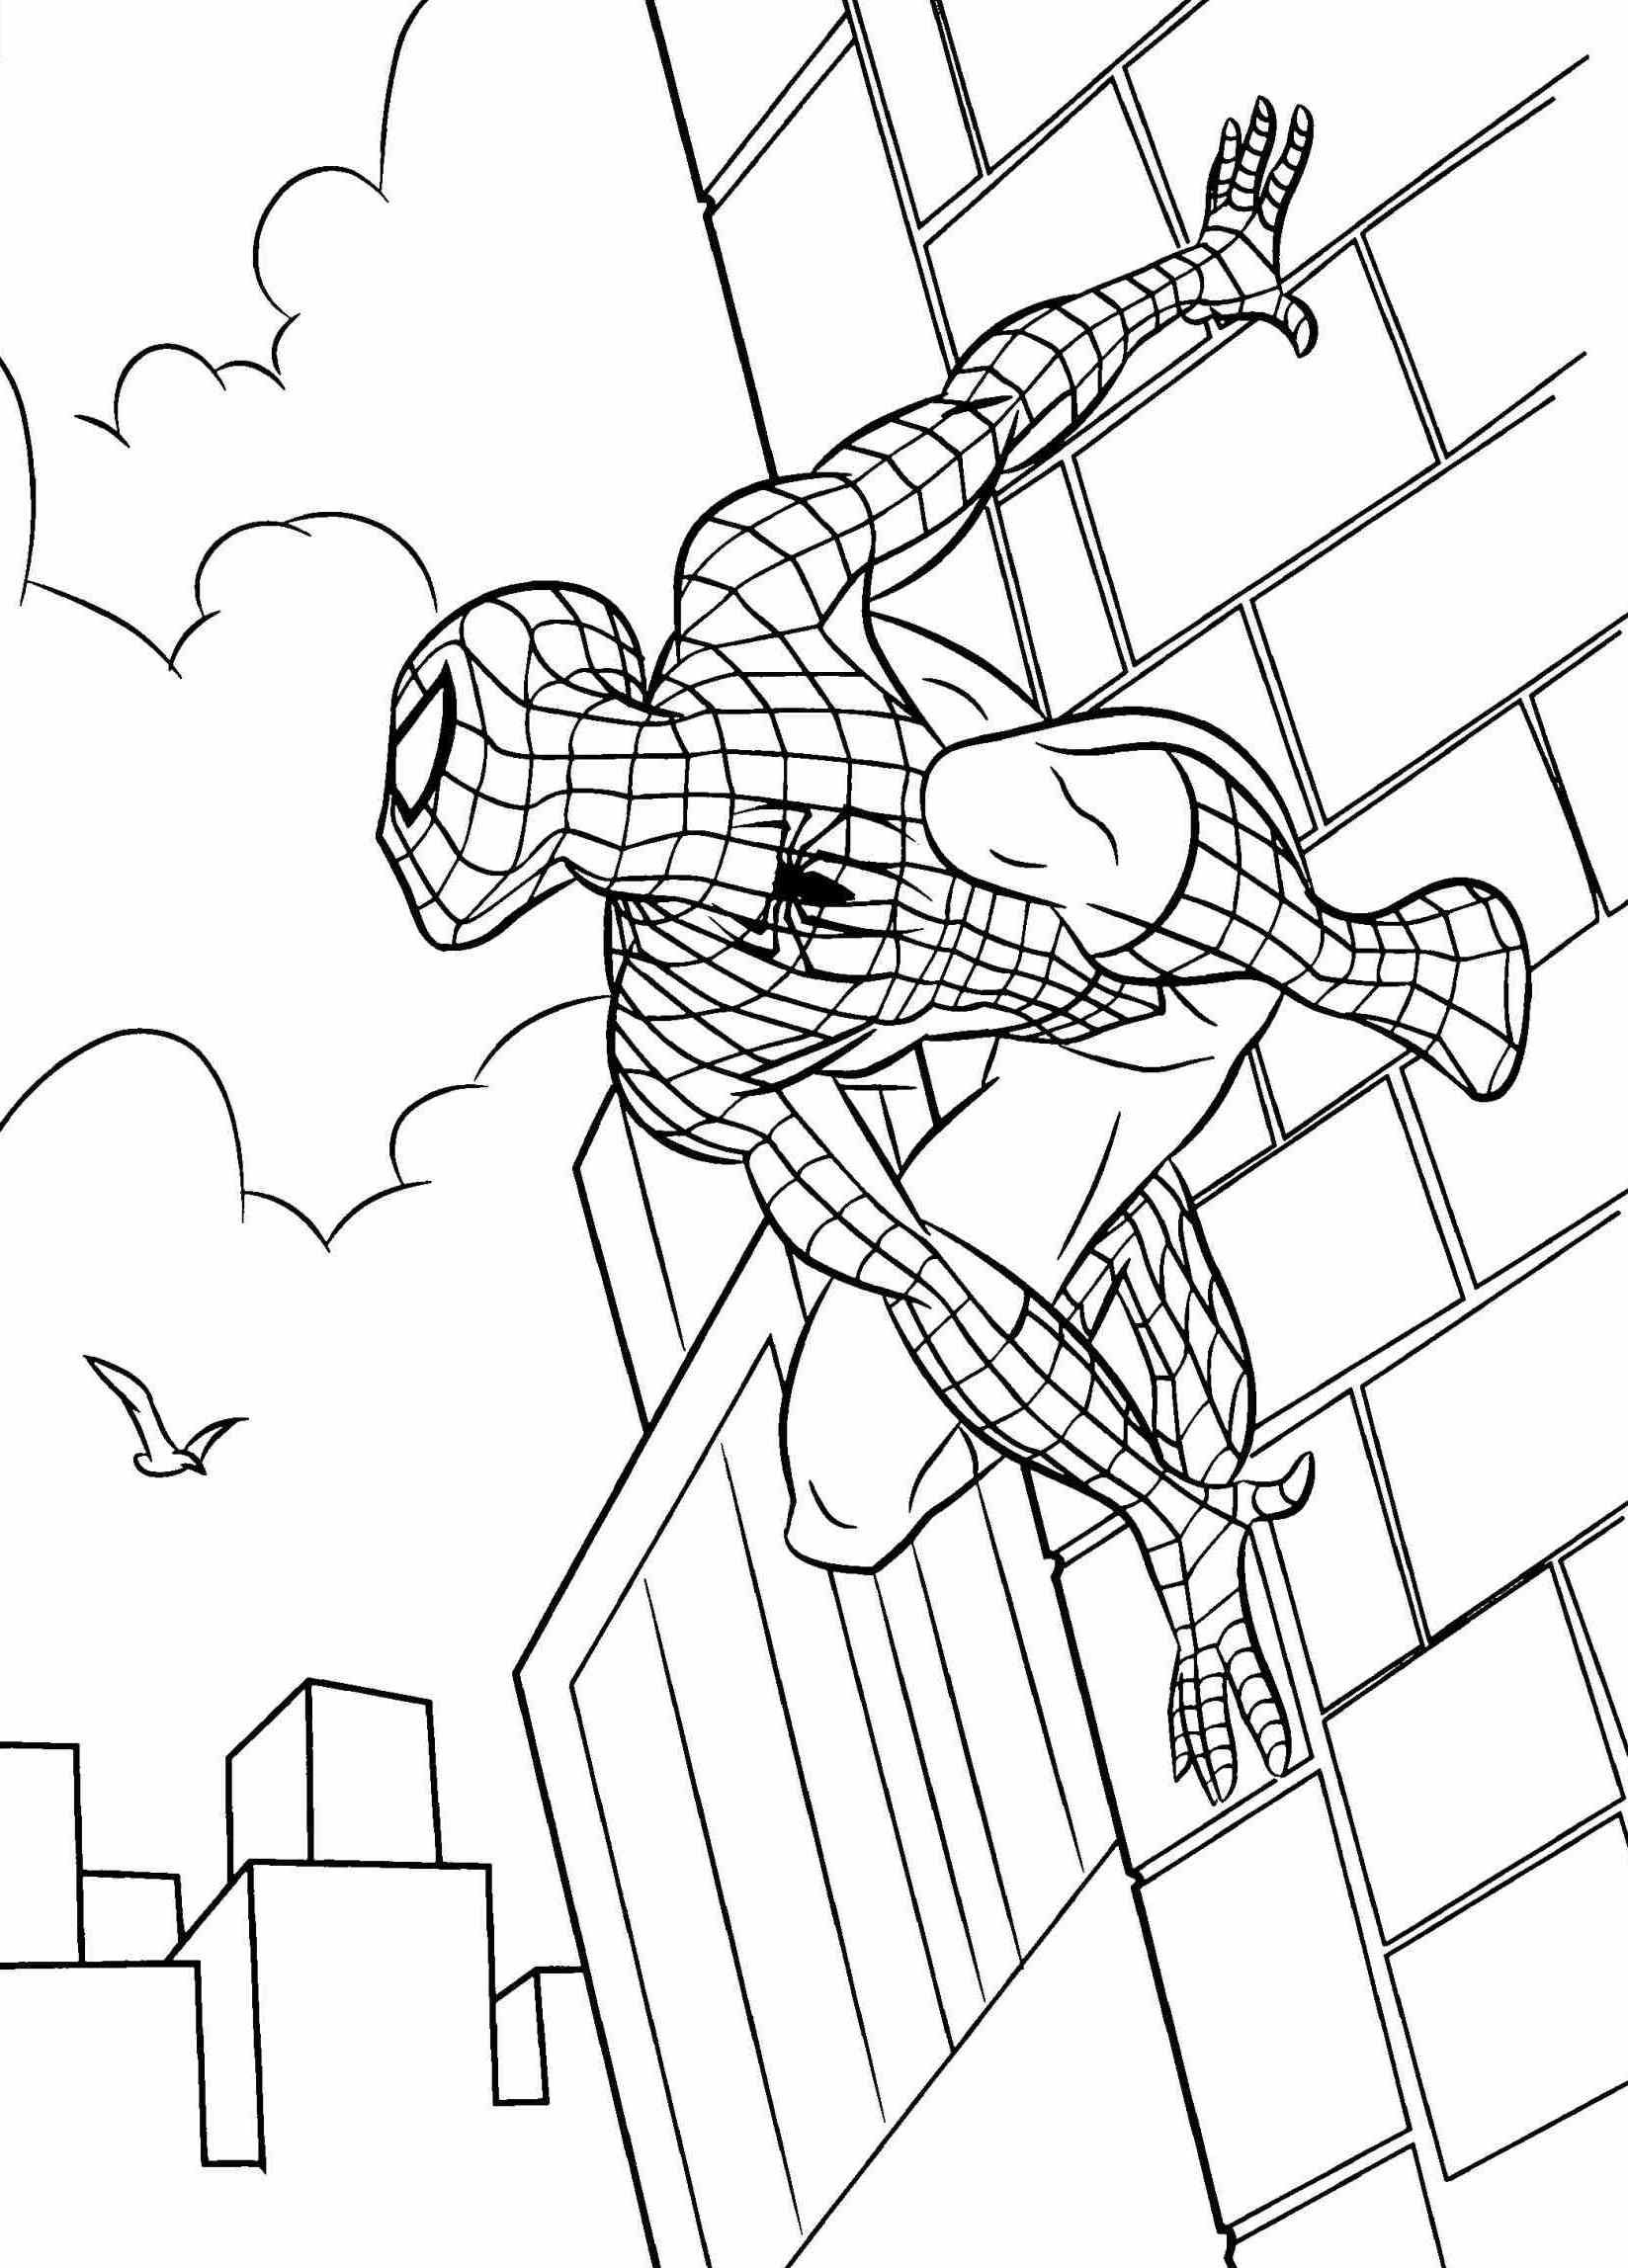 Pin by PSKPedia.com on Spiderman Coloring Pages